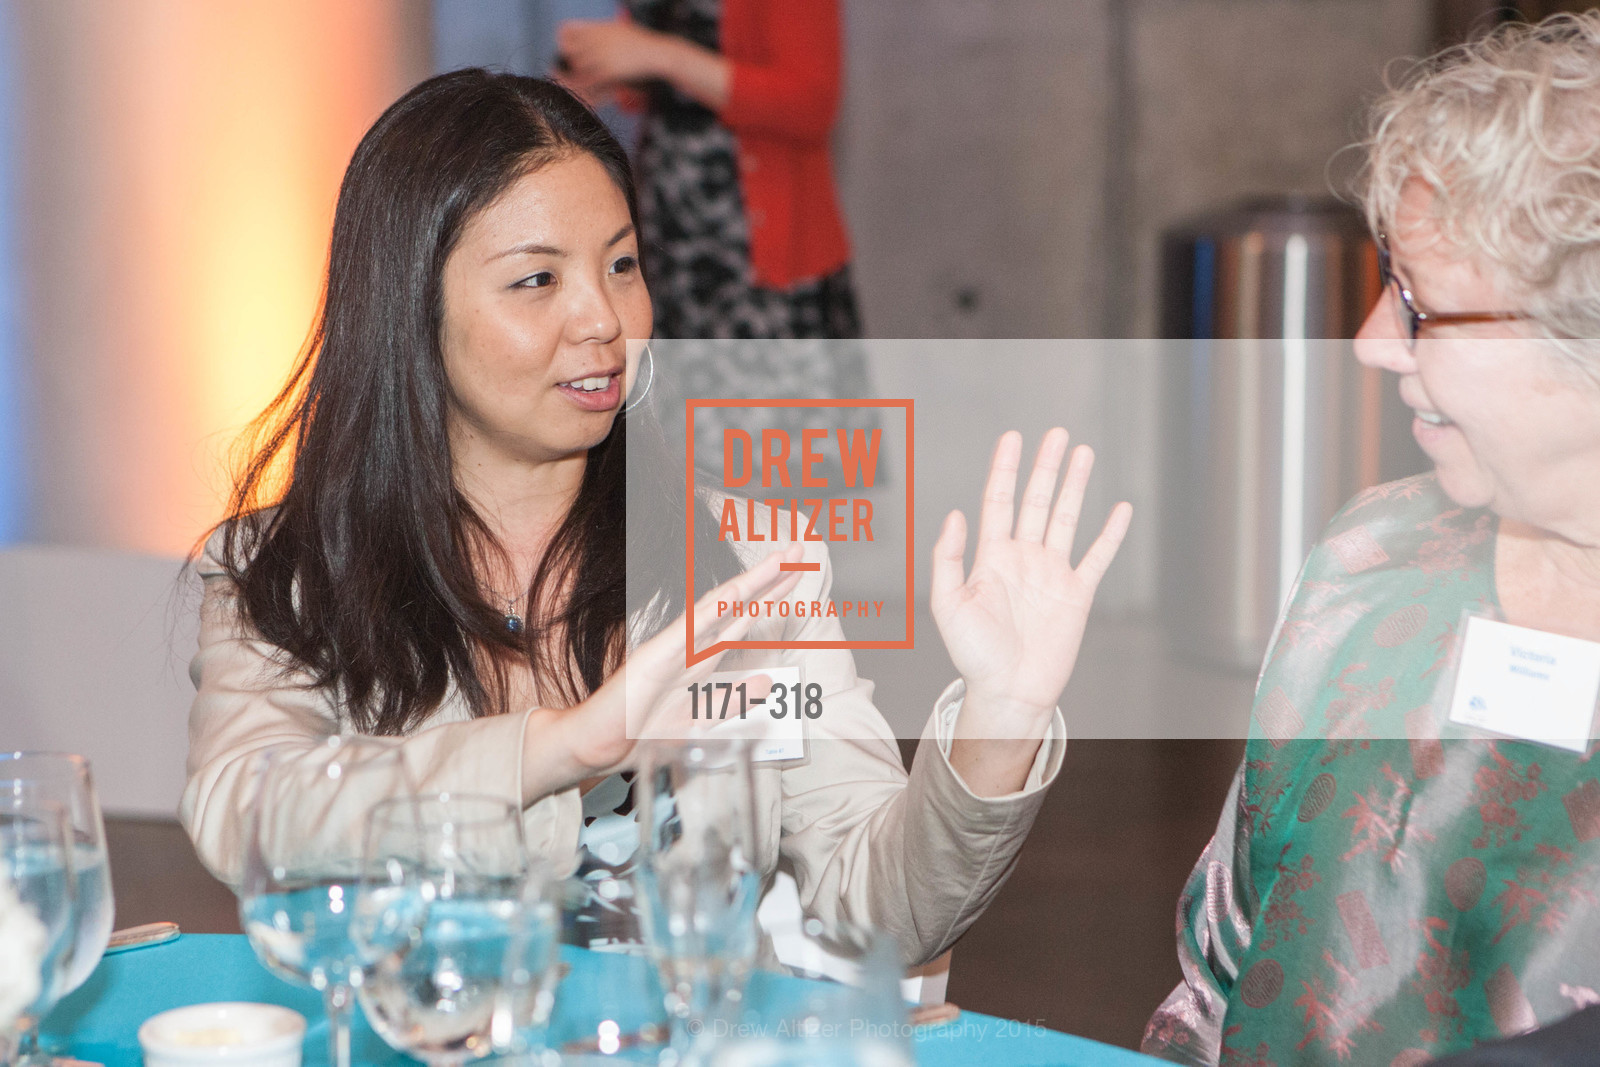 Top Picks, Coral Reef Alliance at the California Academy of Sciences, September 26th, 2015, Photo,Drew Altizer, Drew Altizer Photography, full-service agency, private events, San Francisco photographer, photographer california